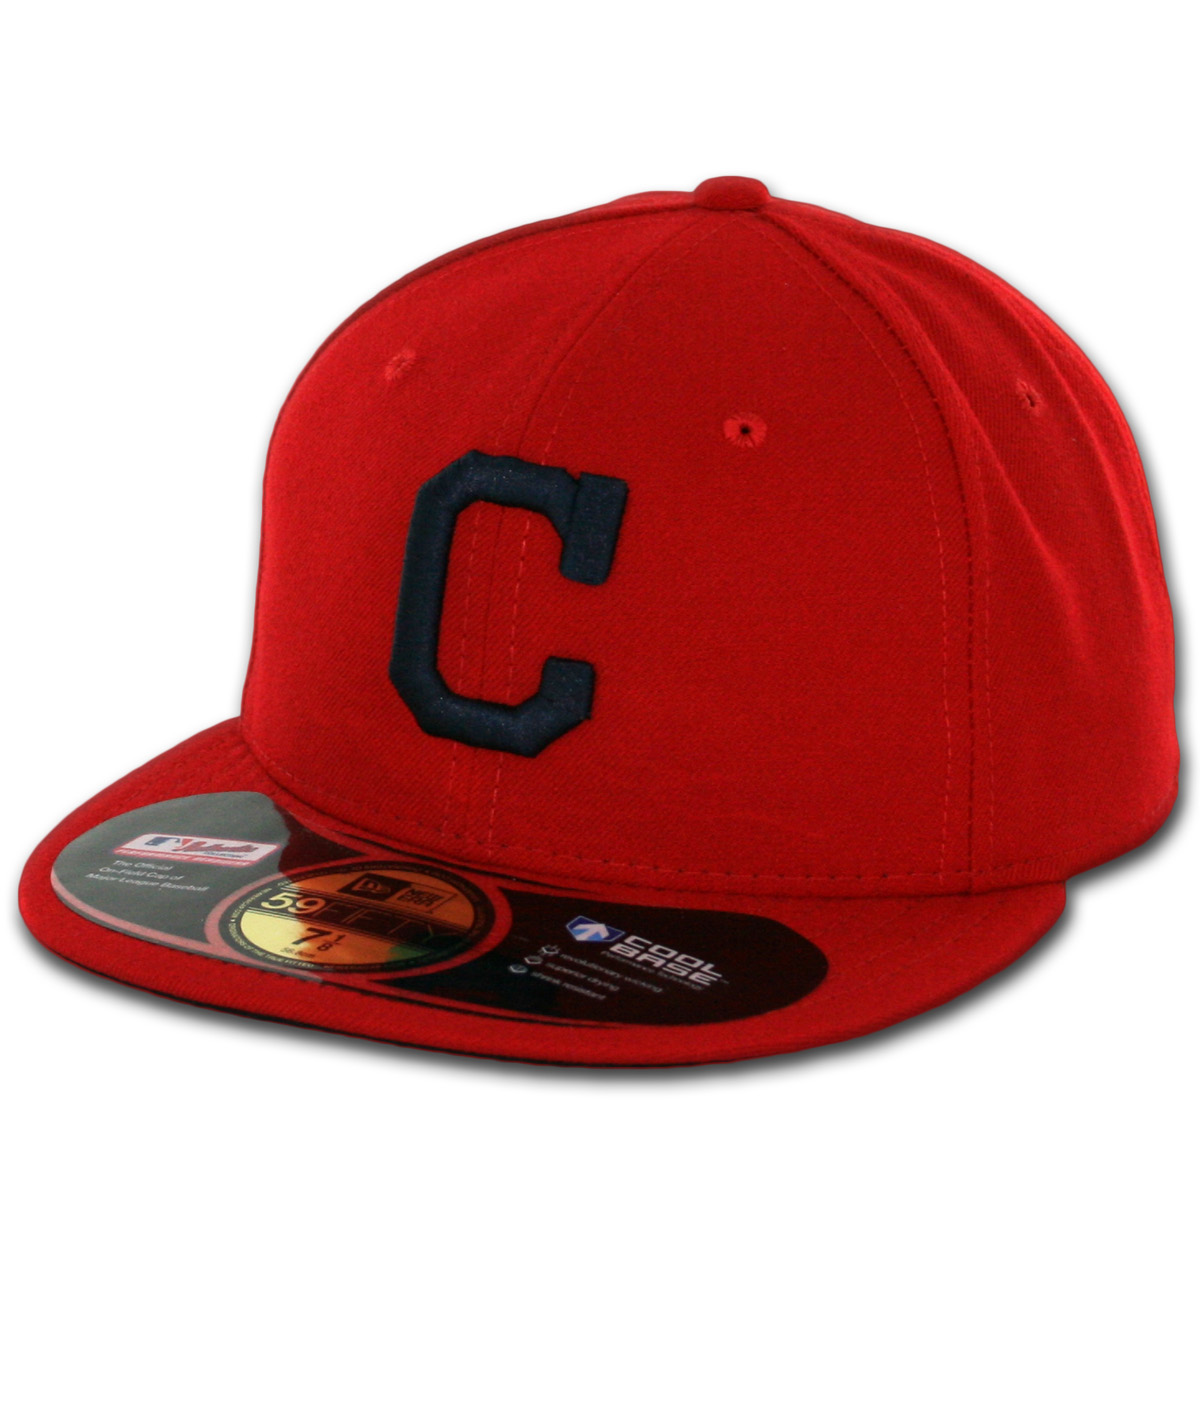 0ae47680 New Era 59Fifty Cleveland Indians Alternate 1 Authentic On Field Fitted Hat